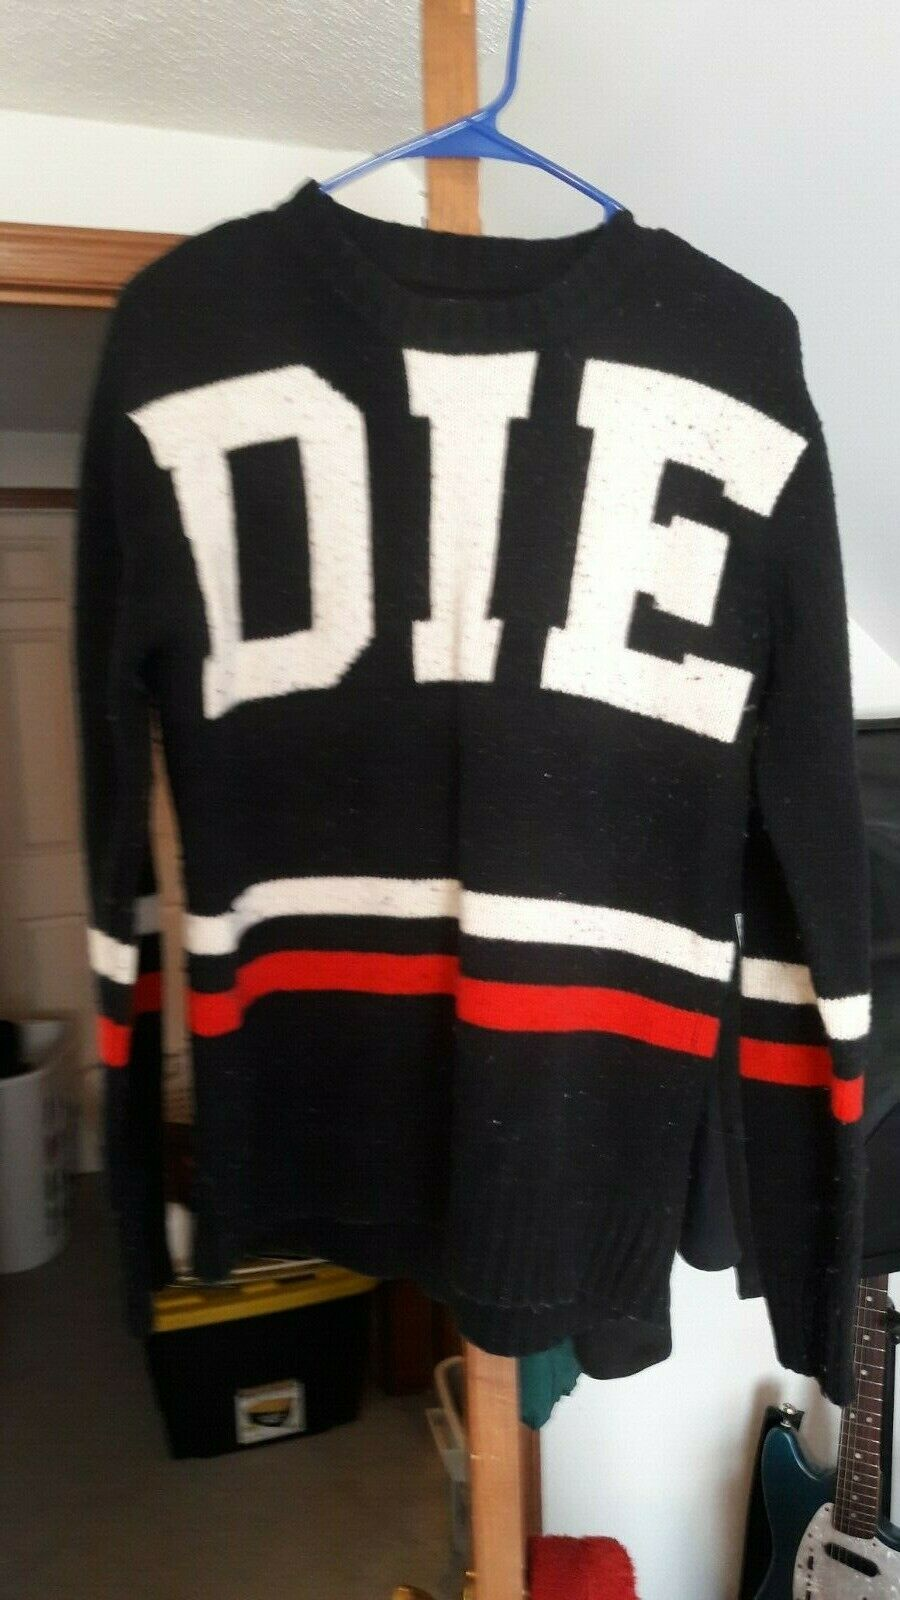 a178d8a0efe UNIF DIE Sweater RARE CLOTHING POSER nozgct5384-Jumpers & Cardigans ...